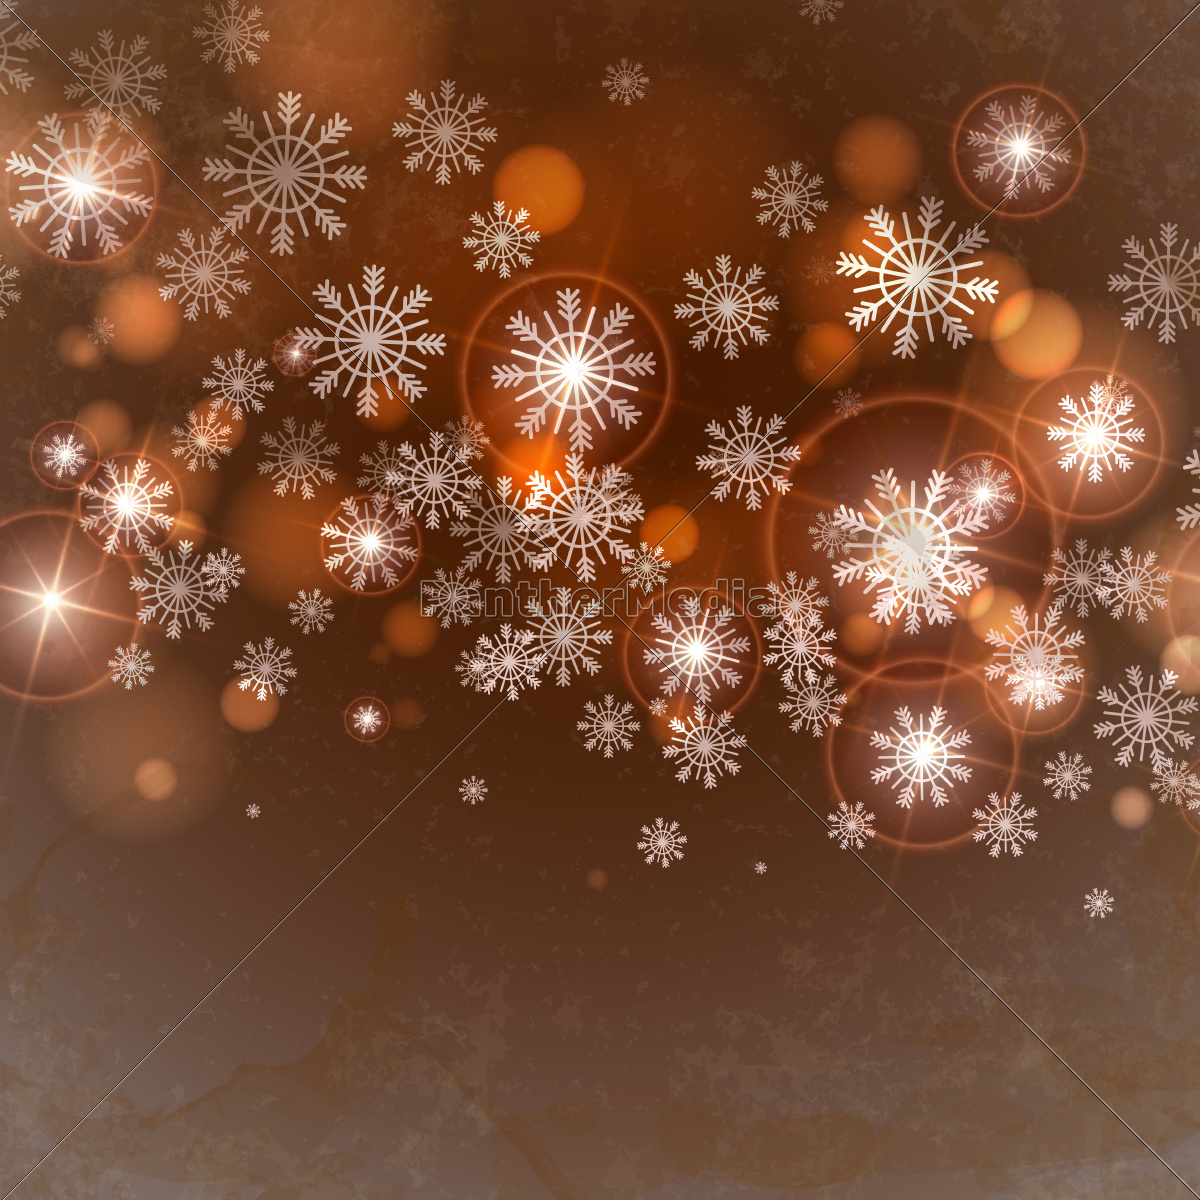 brown, background, with, snowflakes. - 10169607